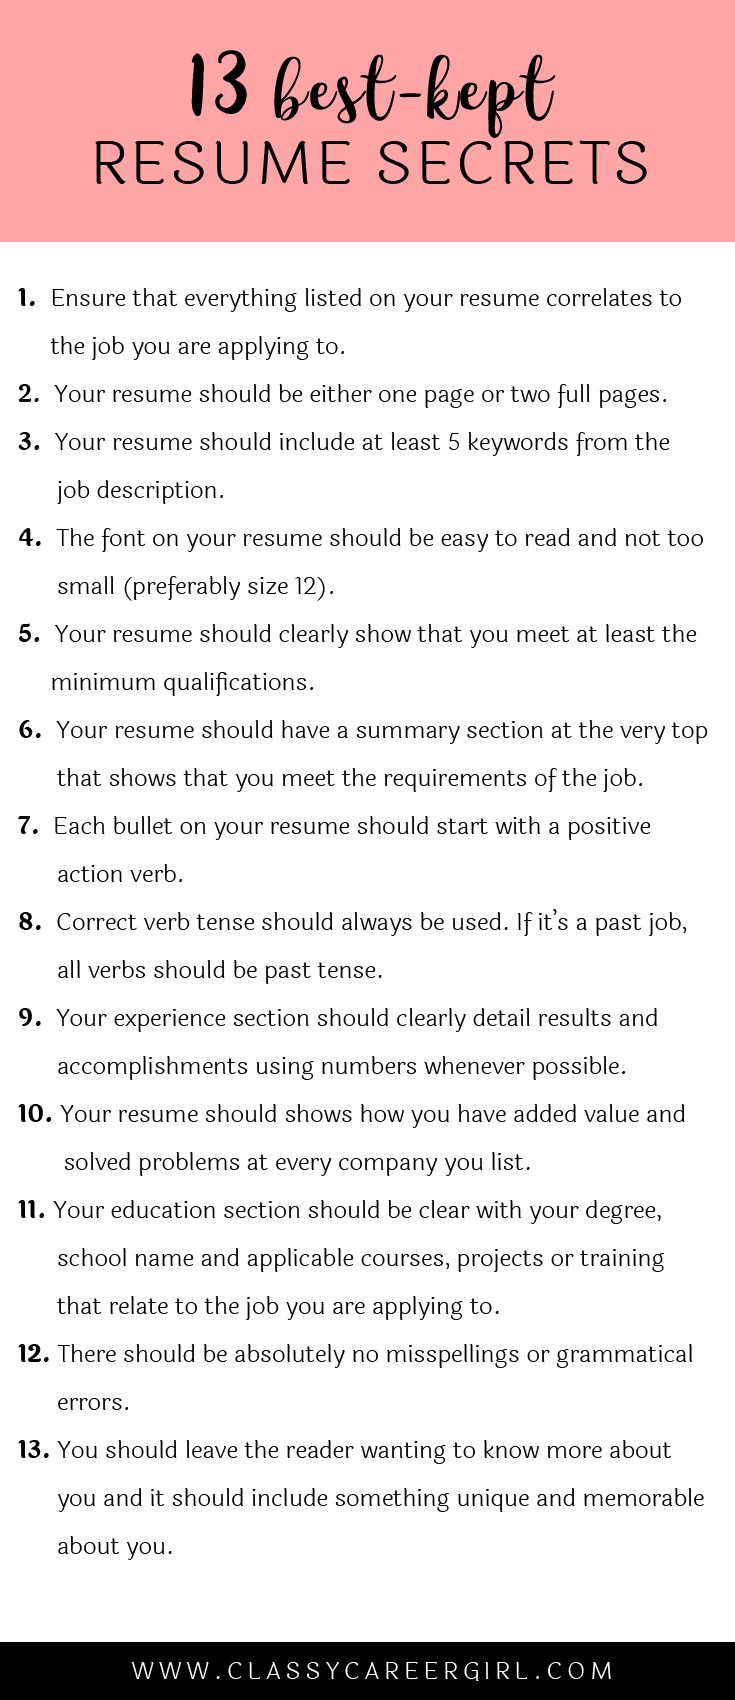 Opposenewapstandardsus  Ravishing  Ideas About Resume On Pinterest  Cv Format Resume Cv And  With Goodlooking Some Hiring Managers Will Toss Your Resume Out If You Dont Know These  With Endearing Resume Screening Software Also Military To Civilian Resume Builder In Addition Reference Page On Resume And What Is A Scannable Resume As Well As Waitress Description For Resume Additionally Open Office Resume From Pinterestcom With Opposenewapstandardsus  Goodlooking  Ideas About Resume On Pinterest  Cv Format Resume Cv And  With Endearing Some Hiring Managers Will Toss Your Resume Out If You Dont Know These  And Ravishing Resume Screening Software Also Military To Civilian Resume Builder In Addition Reference Page On Resume From Pinterestcom